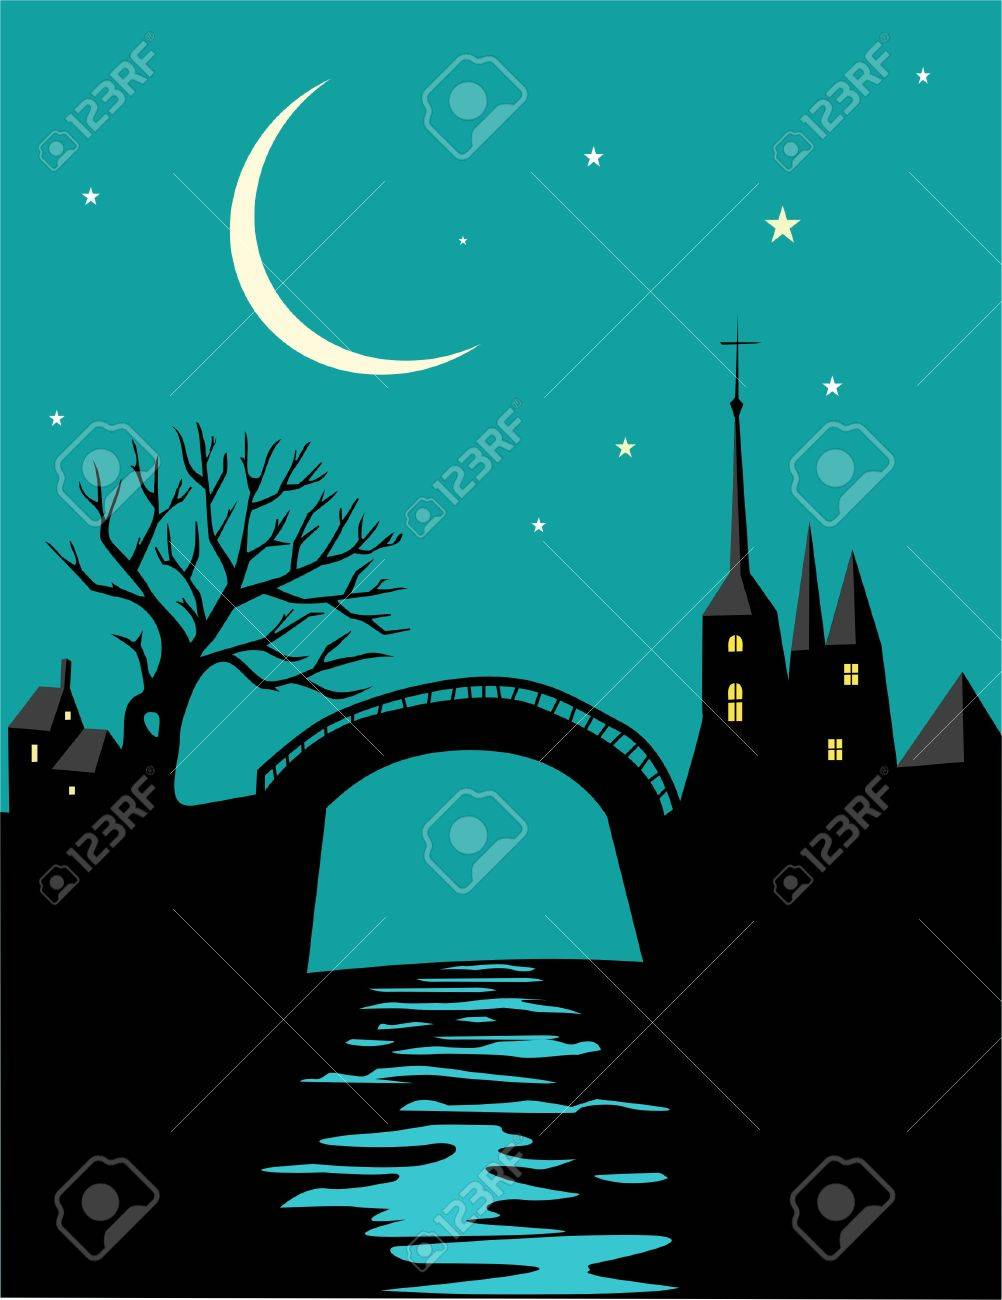 Night landscape with castle and river Stock Vector - 11407307